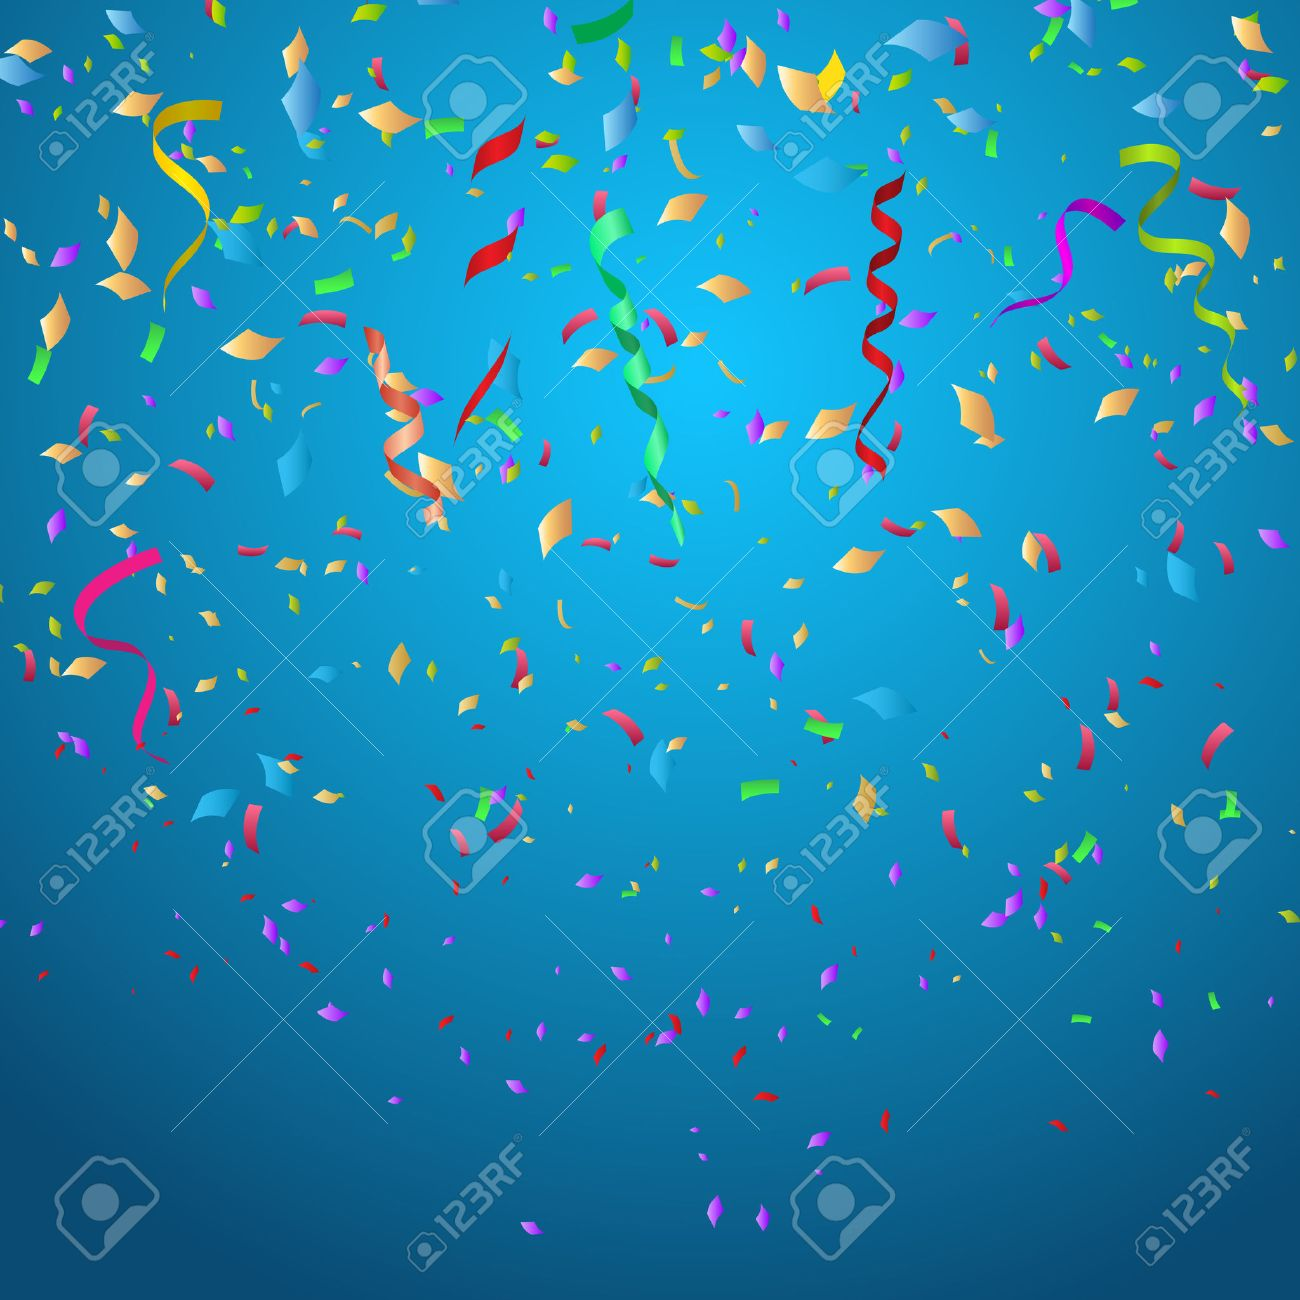 Confetti Background Ideal For Christmas Or Birthdays Stock Photo